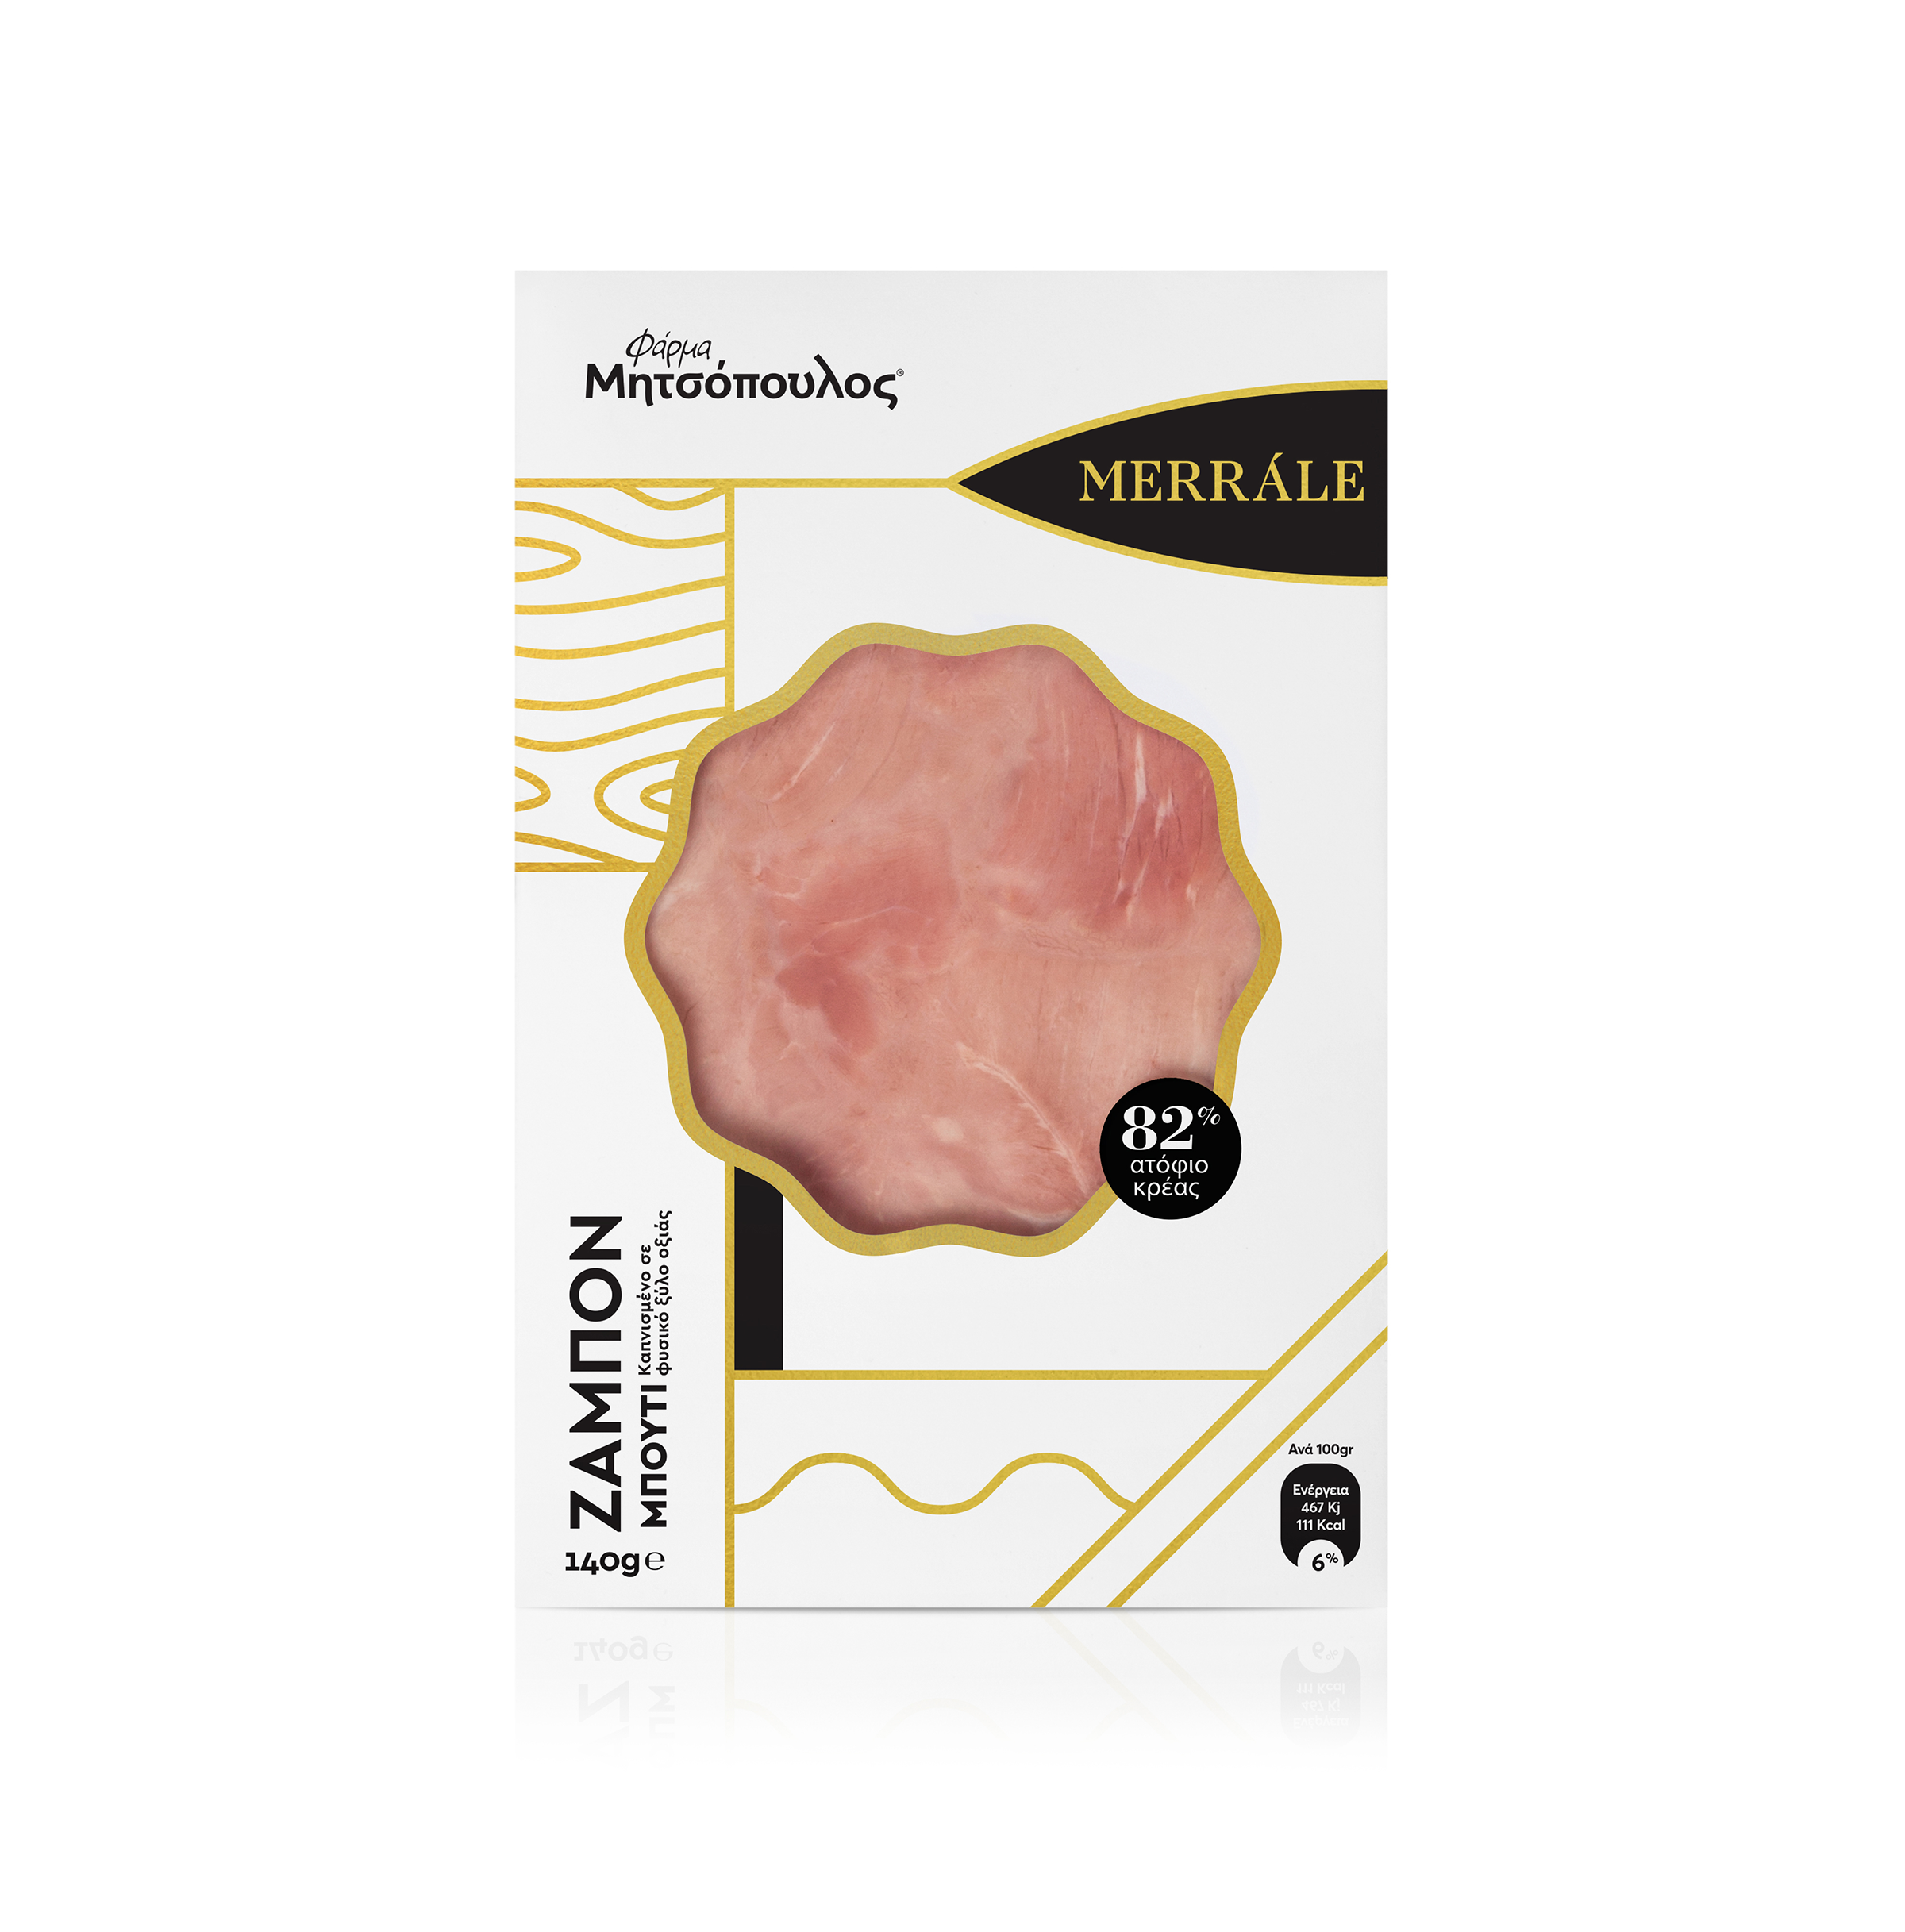 Naming and packaging Design for the Premium Cold cuts Series from Greece